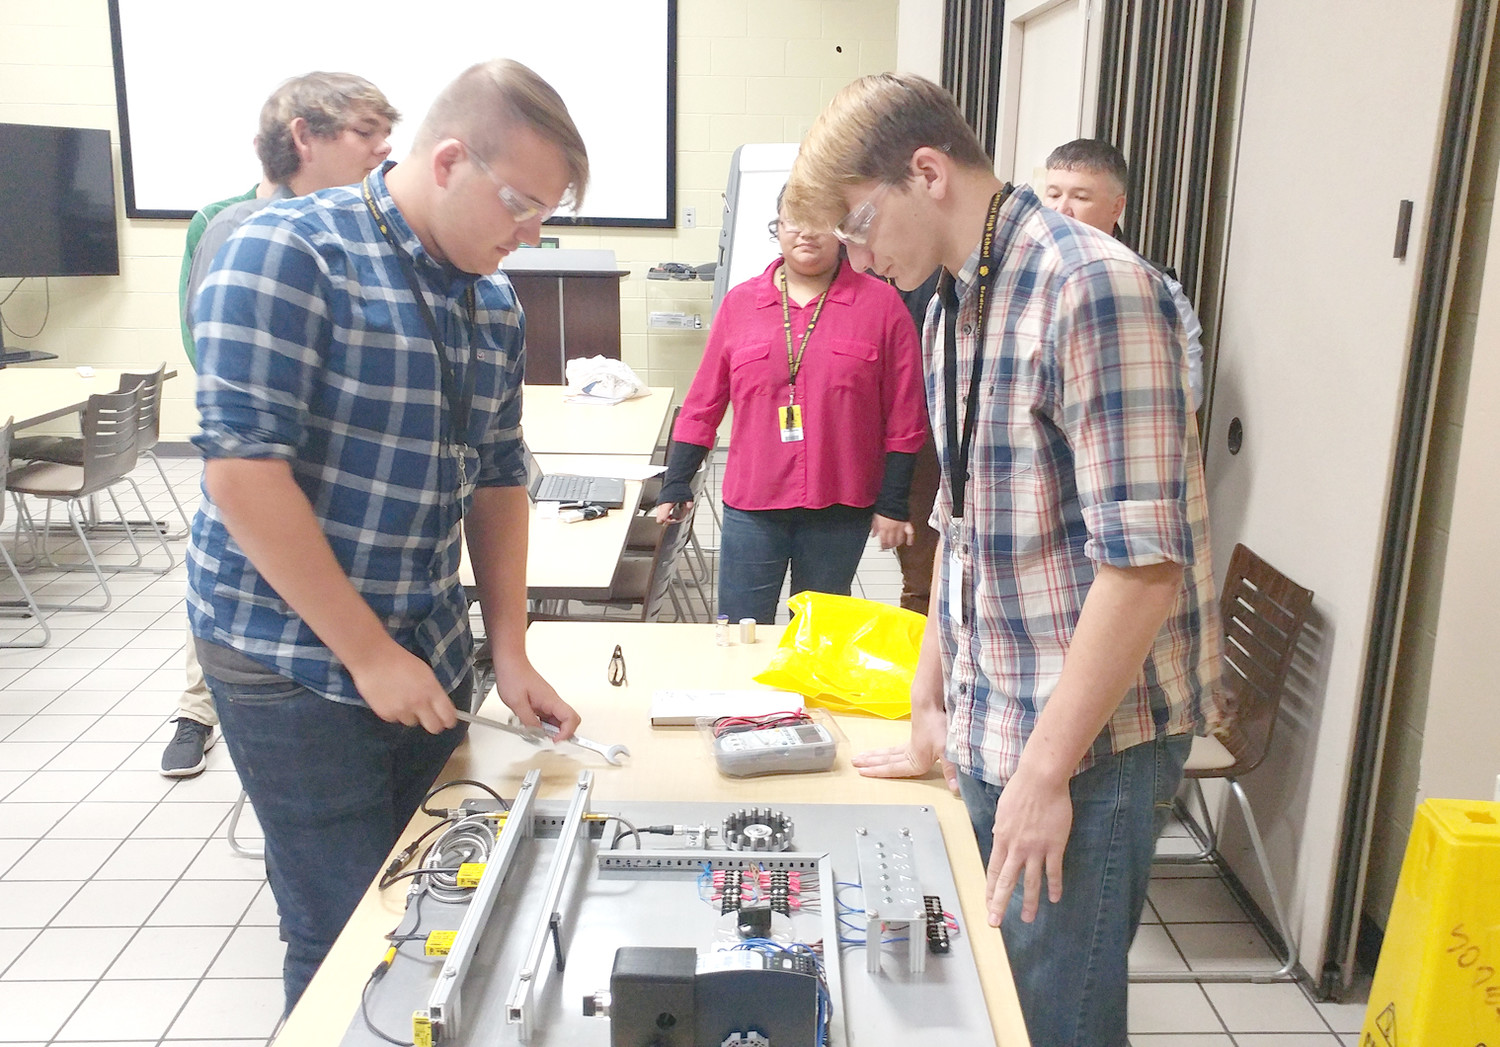 MECHATRONICS students from Bradley Central High School troubleshoot a problem while presenting their project to Bayer. They visited the company as part of Cleveland Associated Industries' Manufacturing Week.